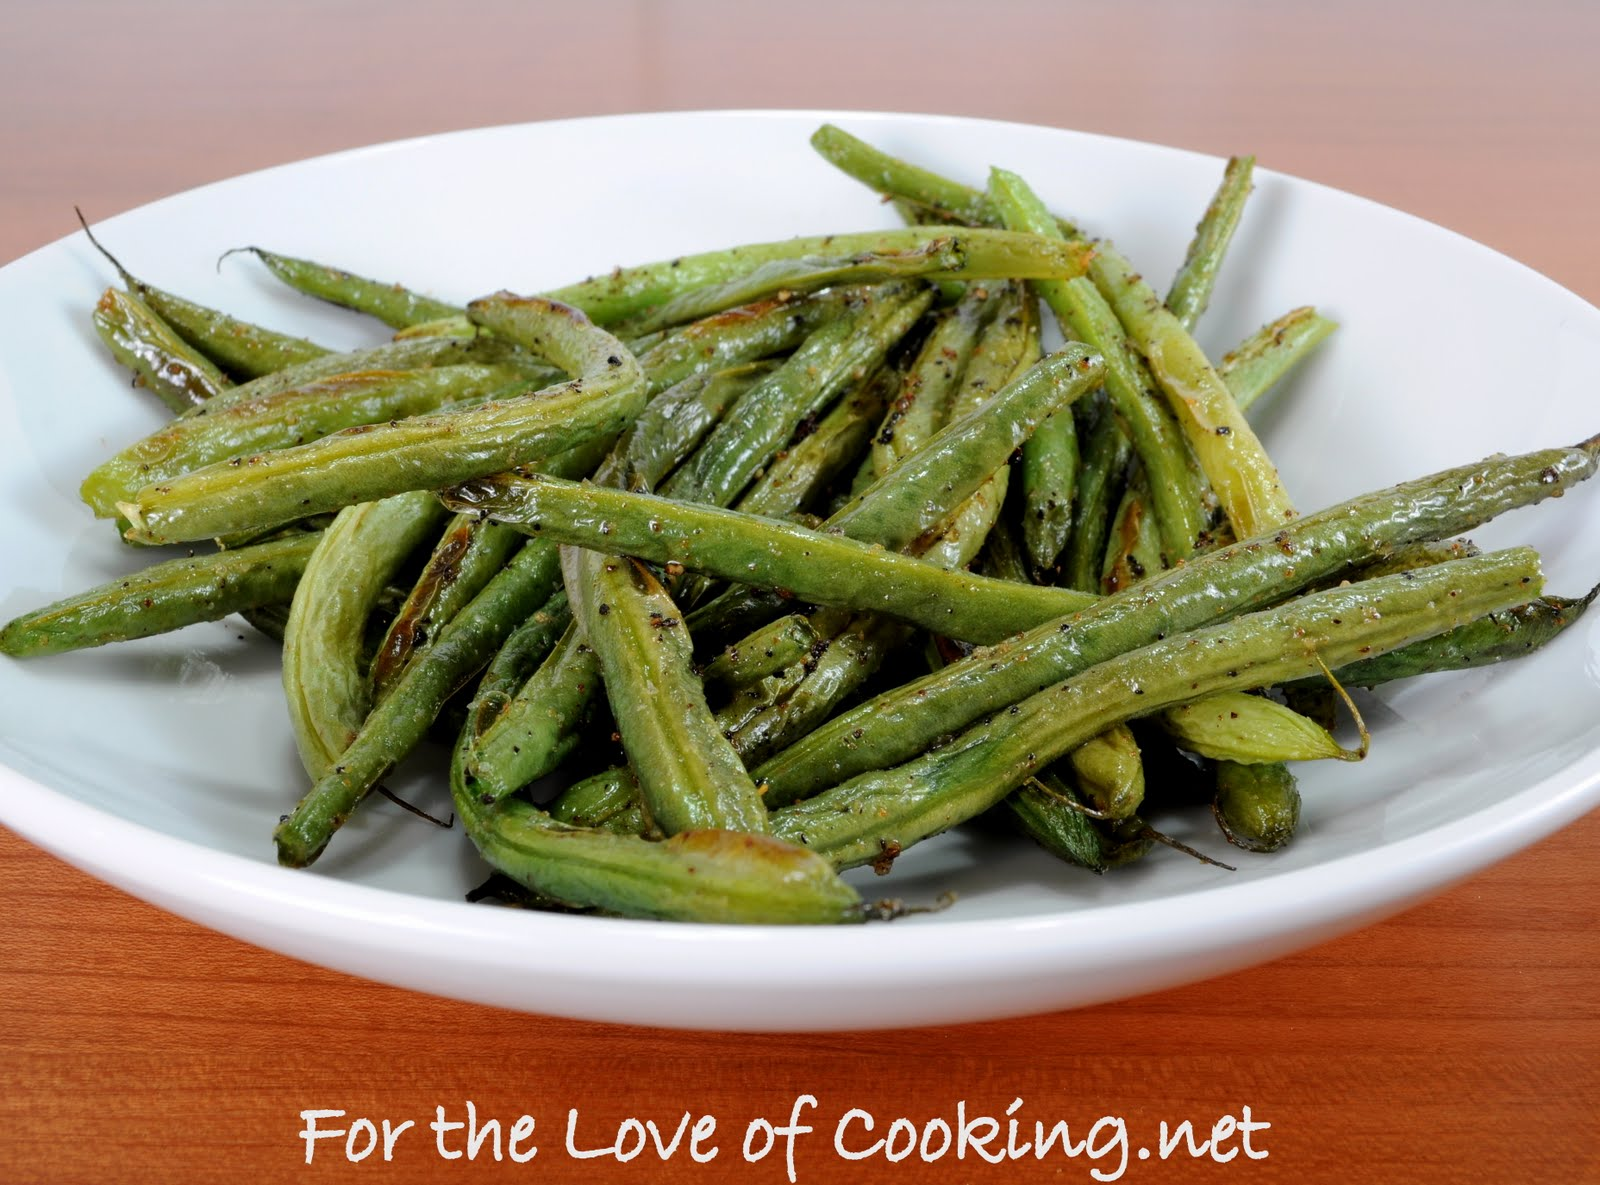 For the Love of Cooking: Roasted Green Beans